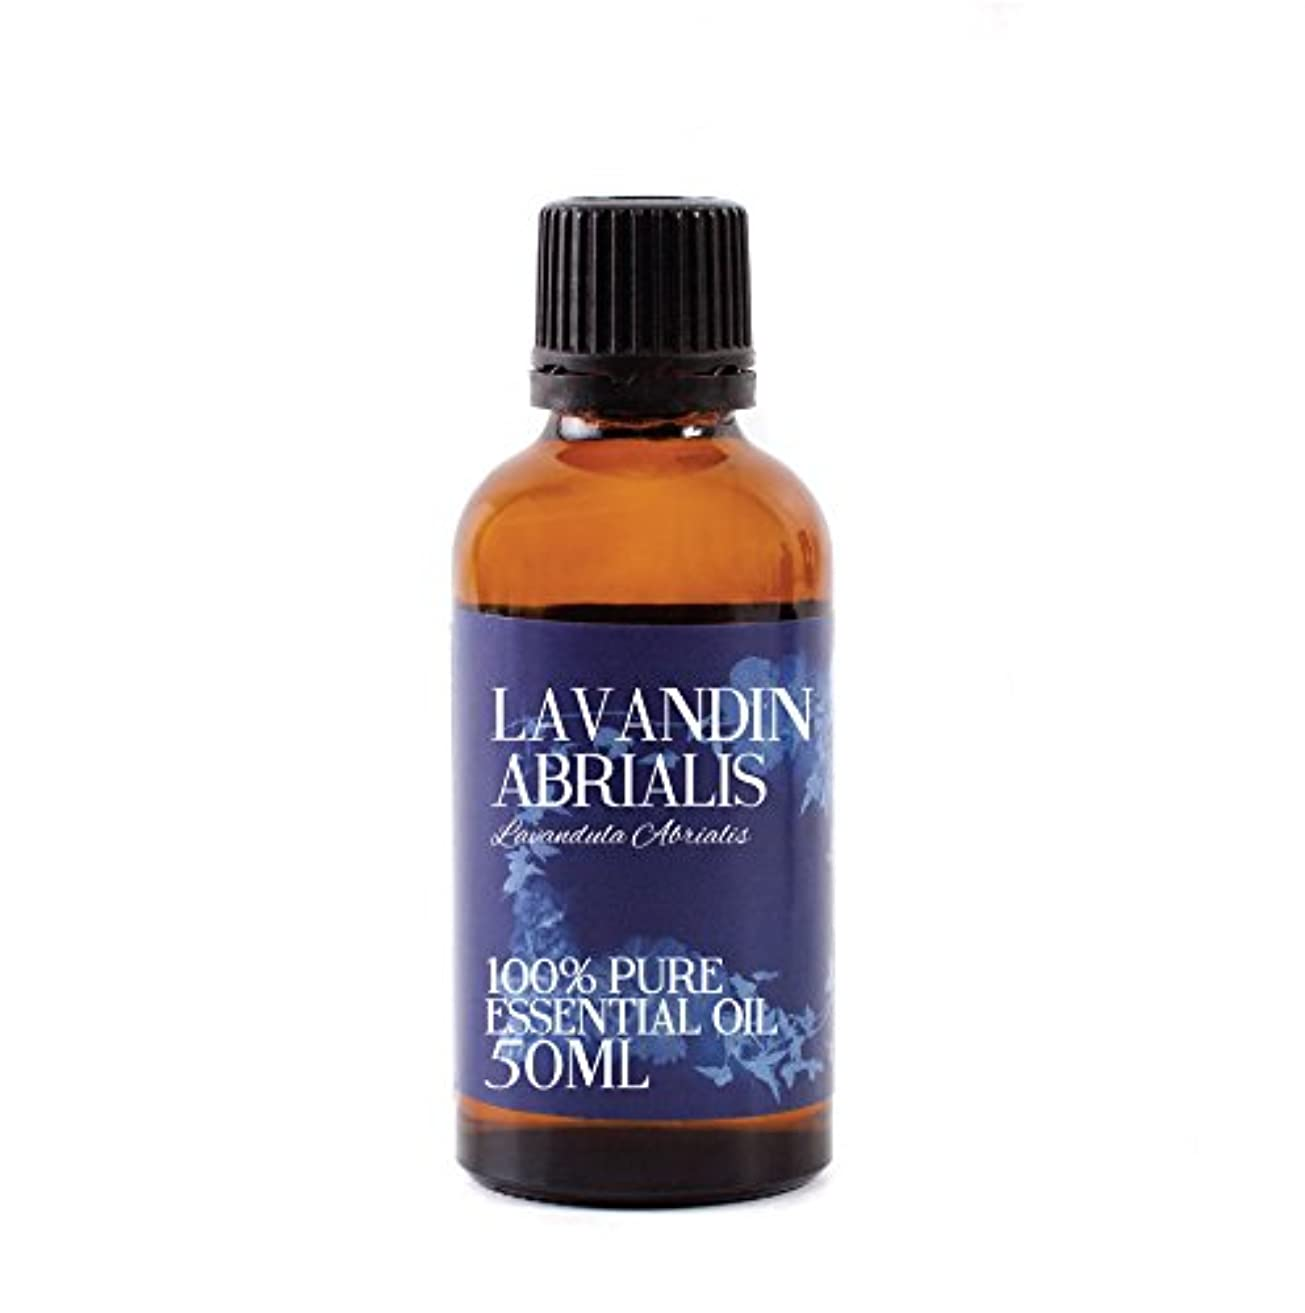 保有者十代の若者たち悪化するMystic Moments | Lavandin Abrialis Essential Oil - 50ml - 100% Pure